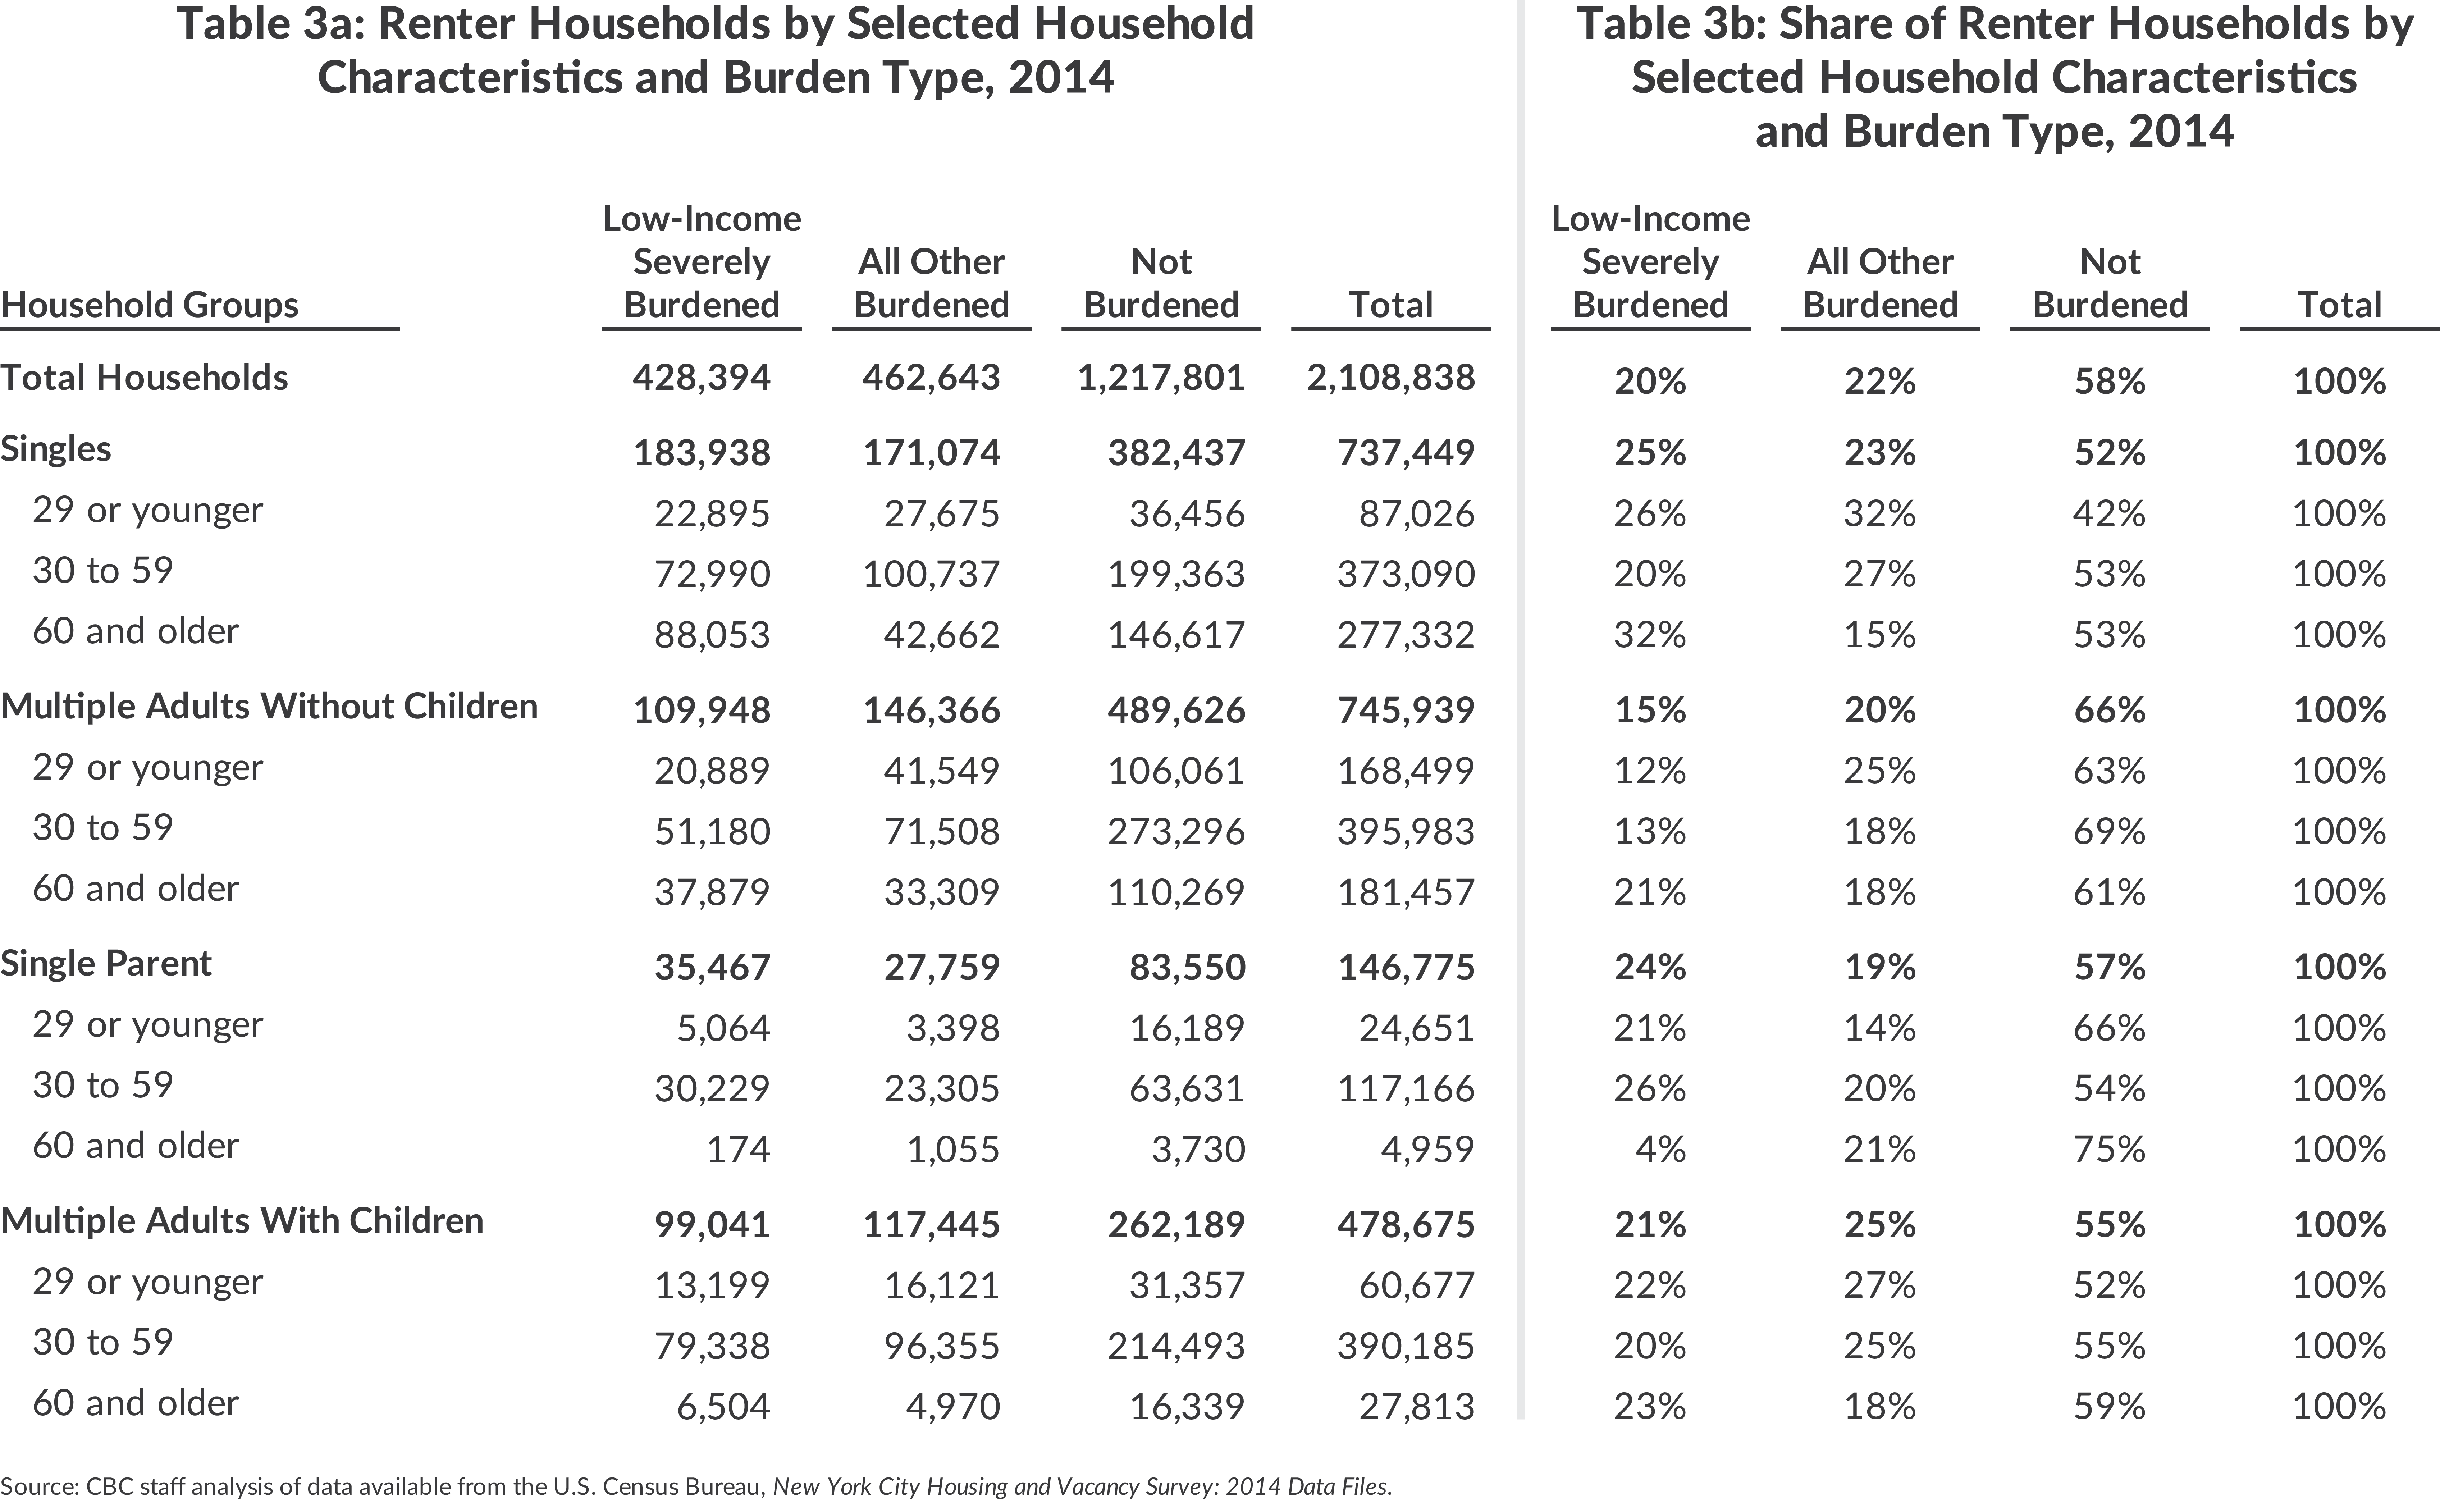 Table 3a: Renter Households by Selected HouseholdCharacteristics and Burden Type, 2014 | GroupsTable 3b: Share of Renter Households bySelected Household Characteristicsand Burden Type